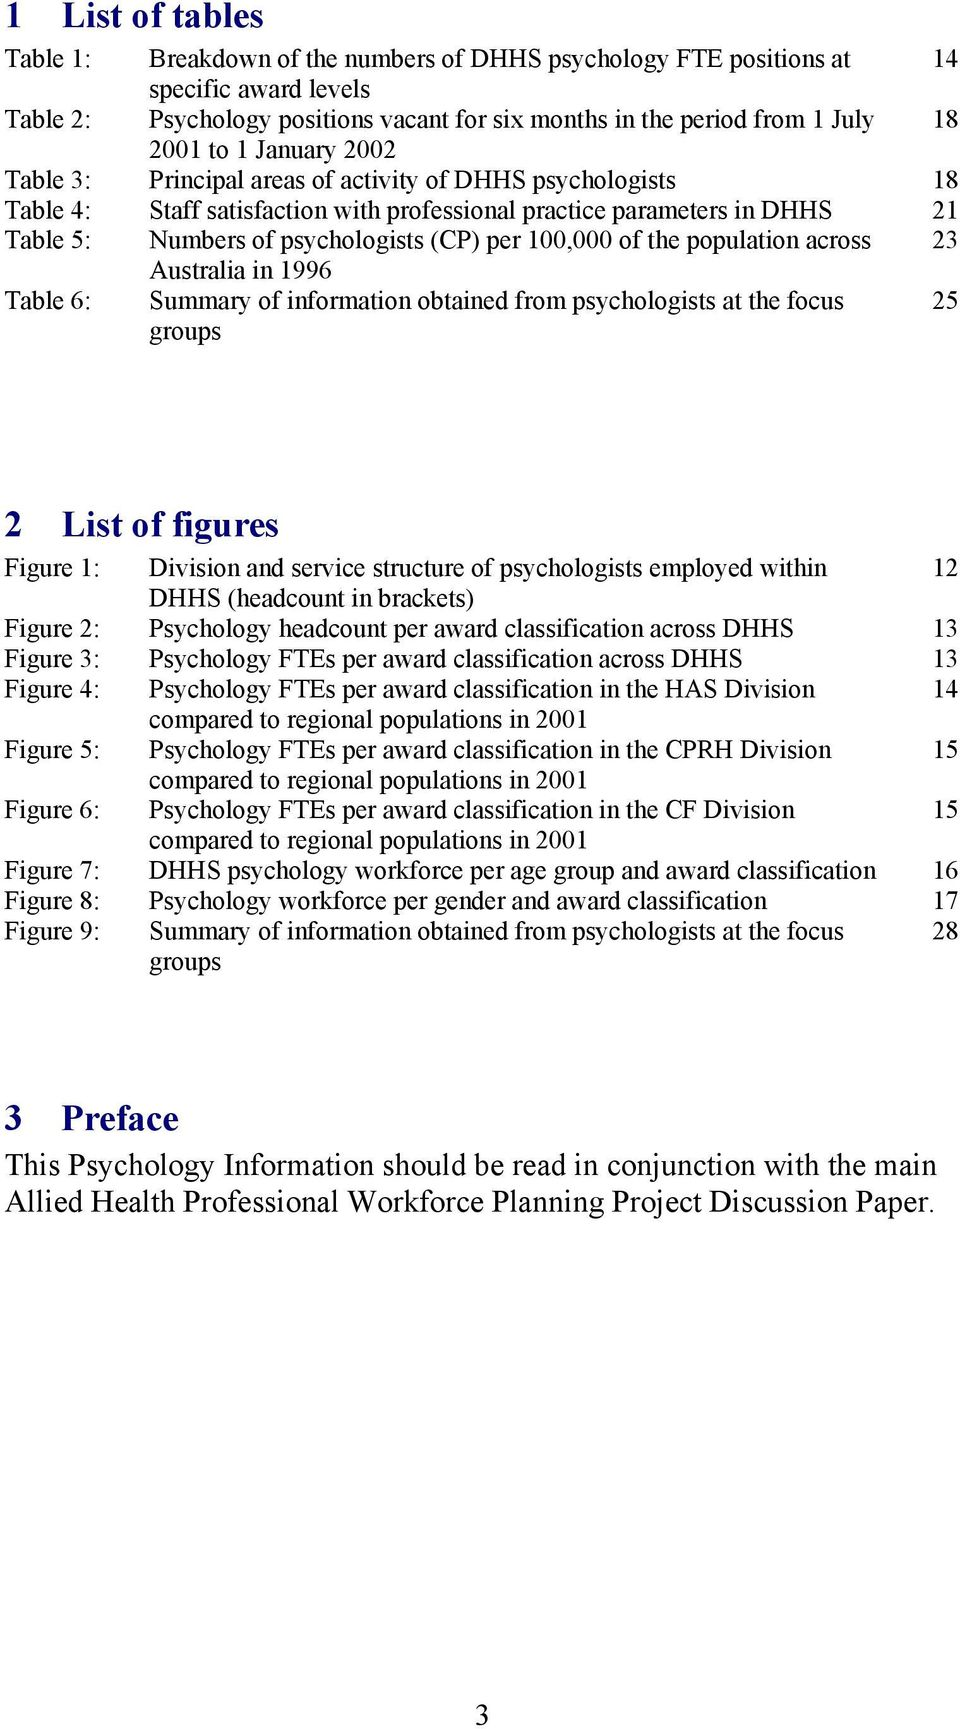 100,000 of the population across 23 Australia in 1996 Table 6: Summary of information obtained from psychologists at the focus groups 25 2 List of figures Figure 1: Division and service structure of